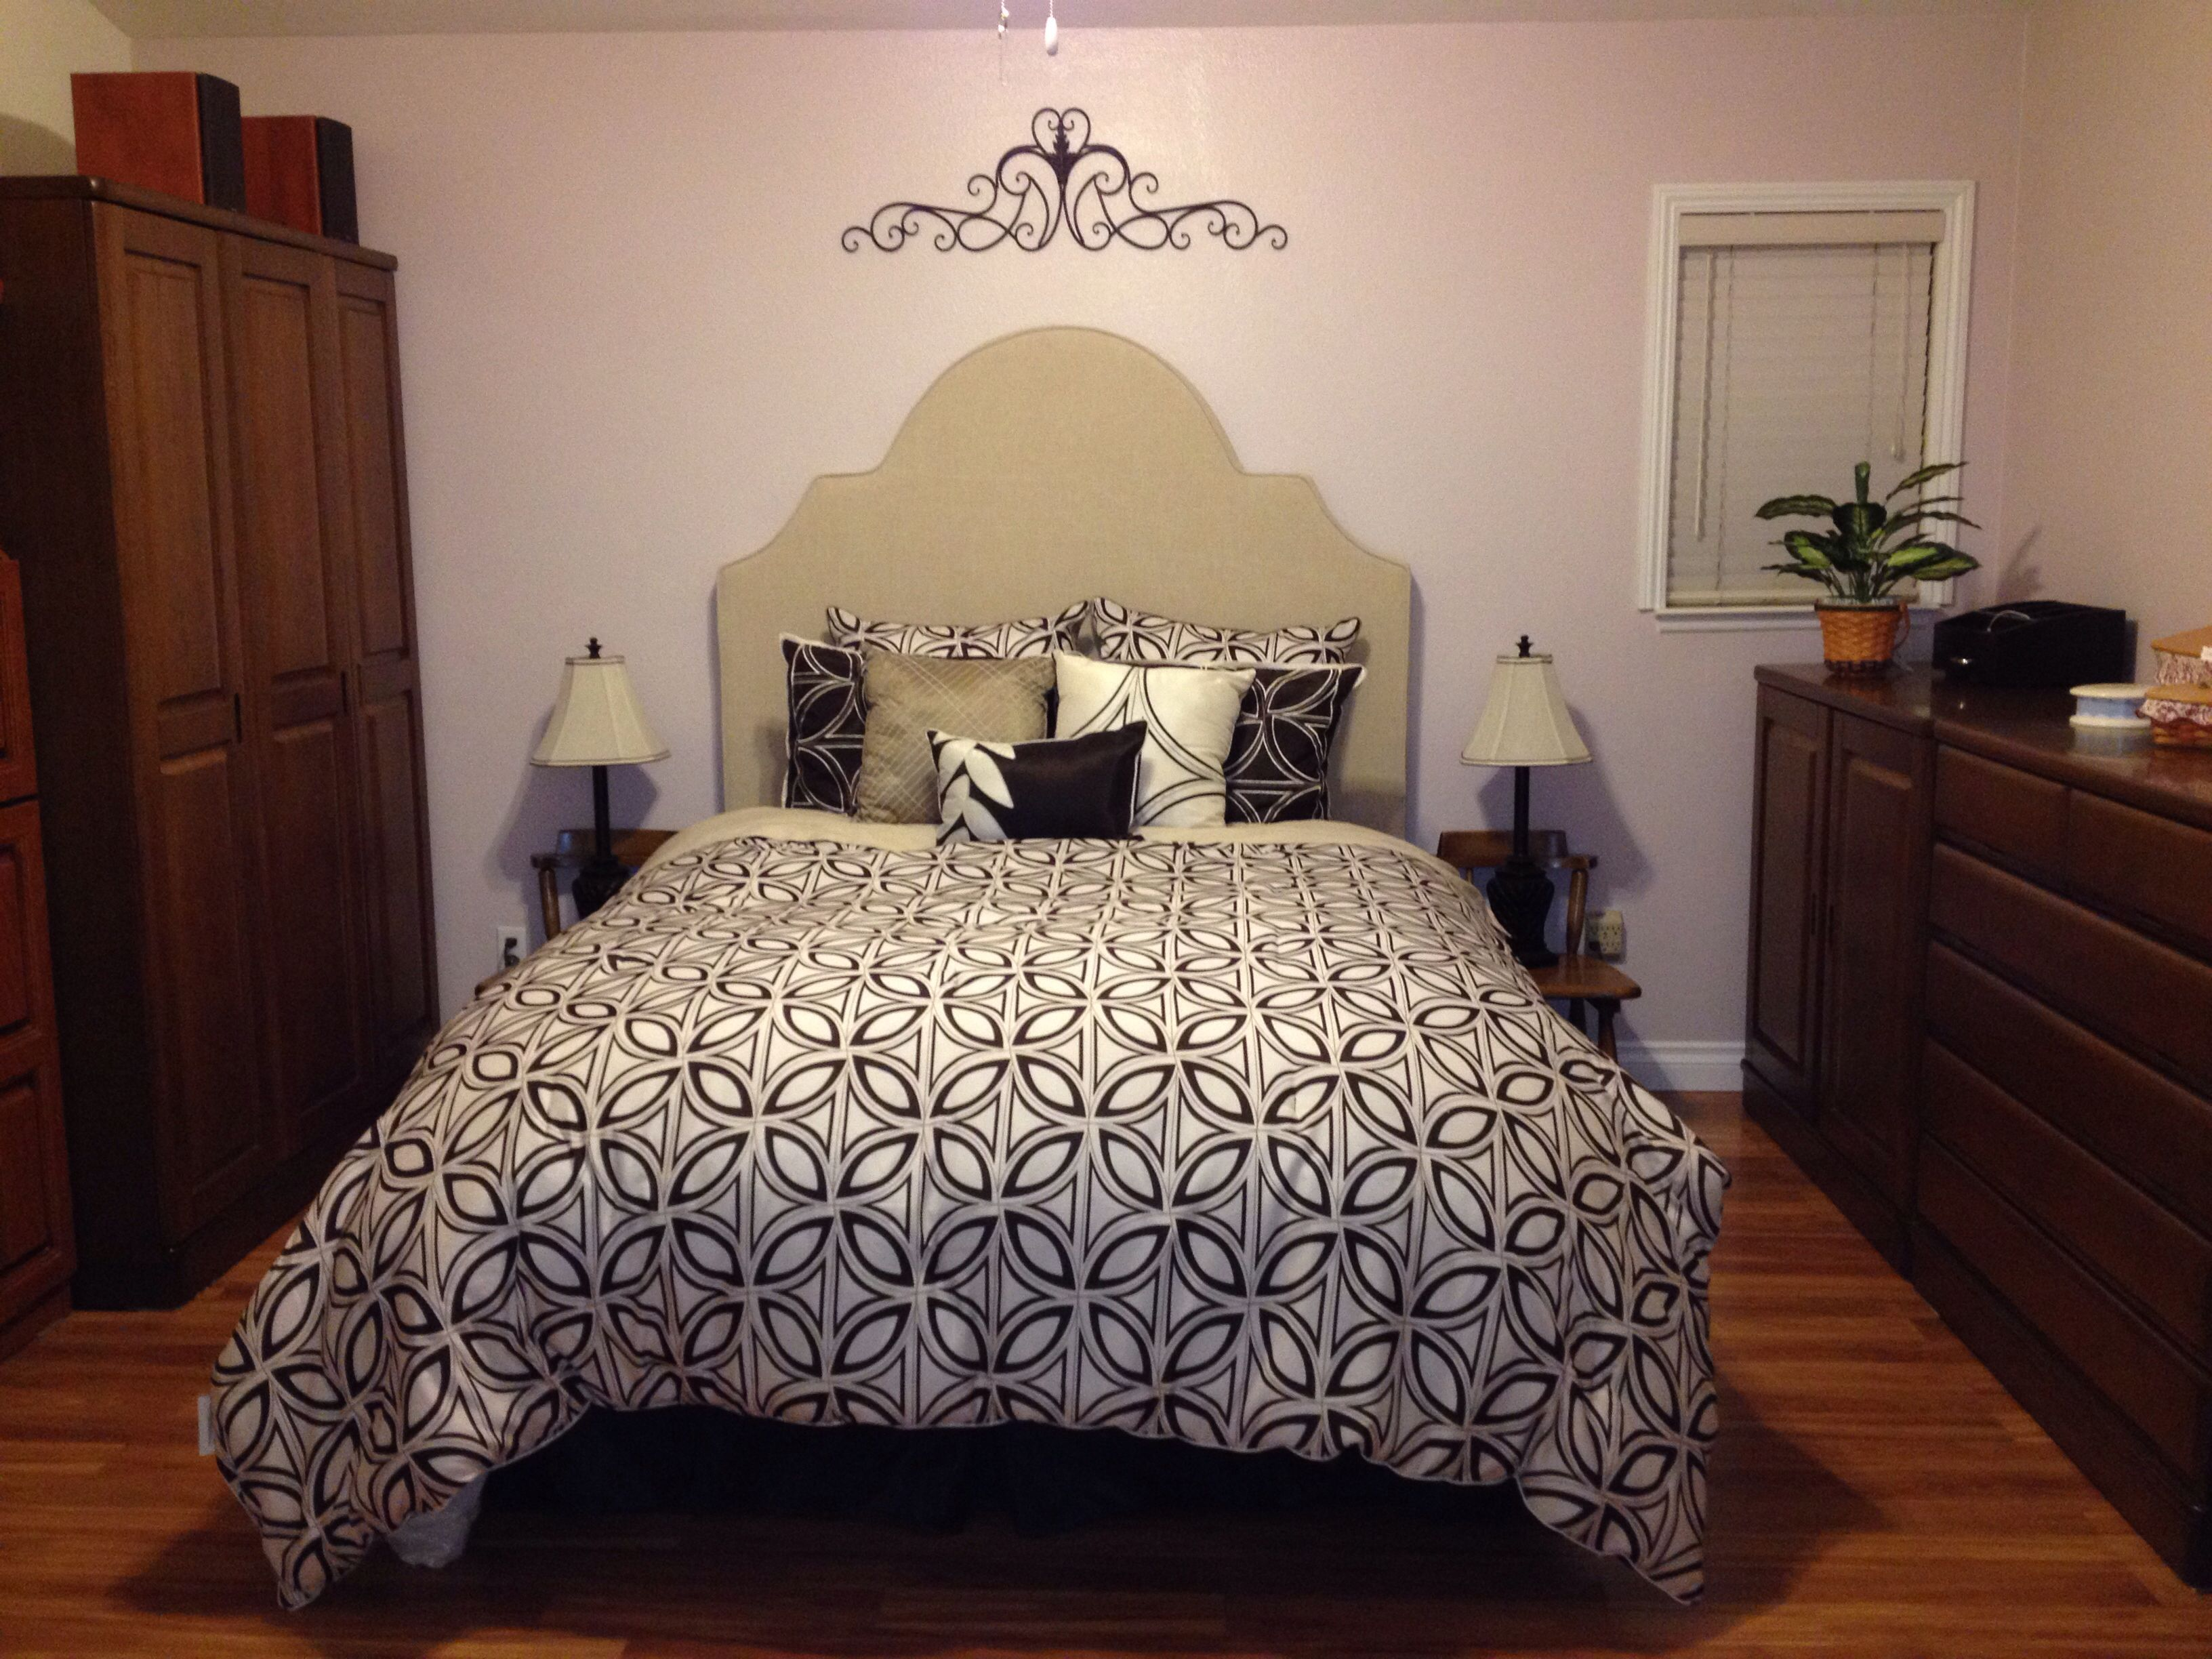 cute bedspread i saw actually cute room layout in general rh pinterest ch